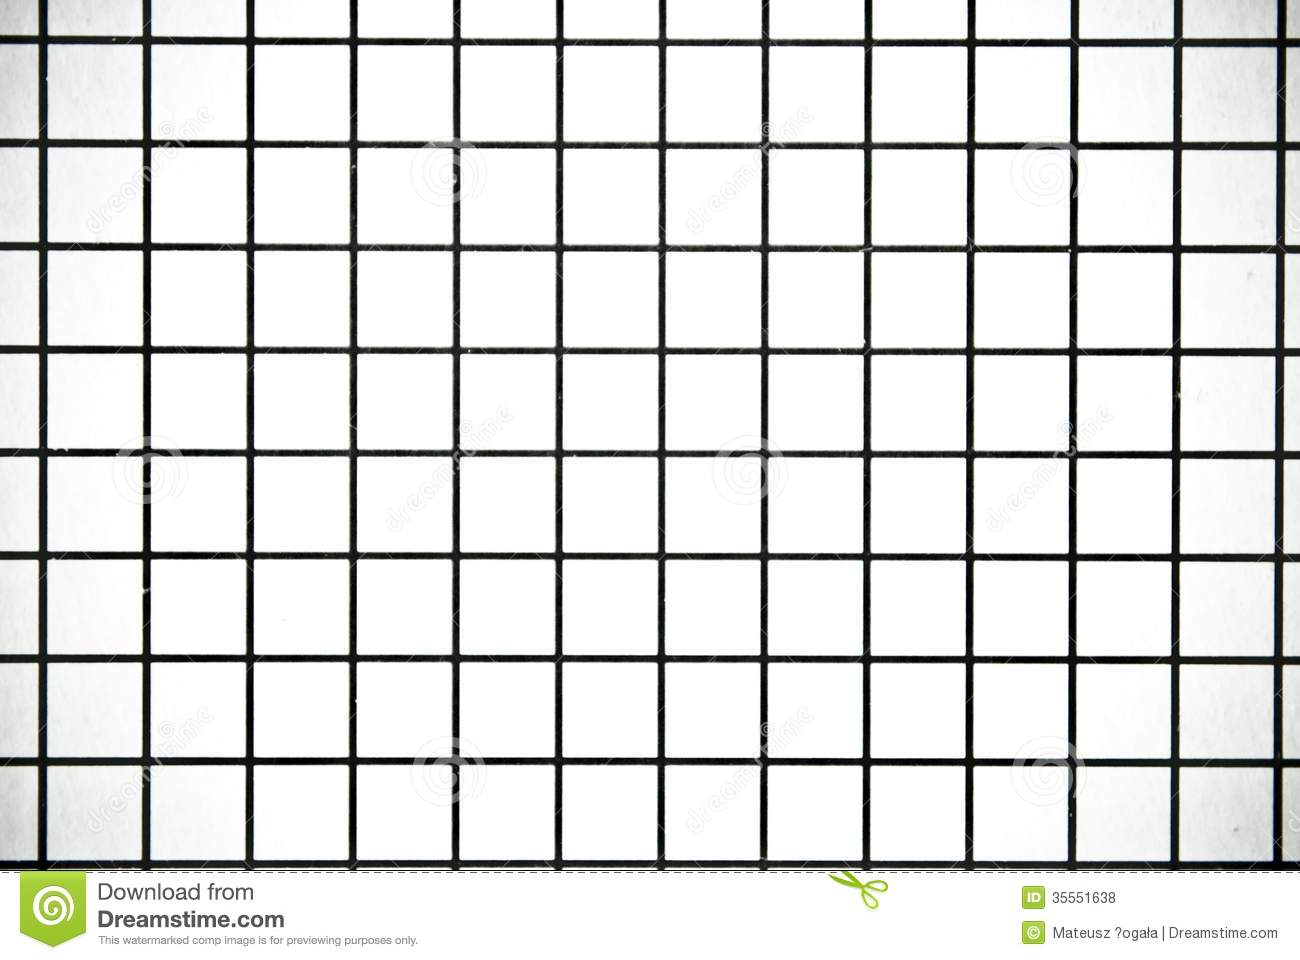 russian essay my family unique